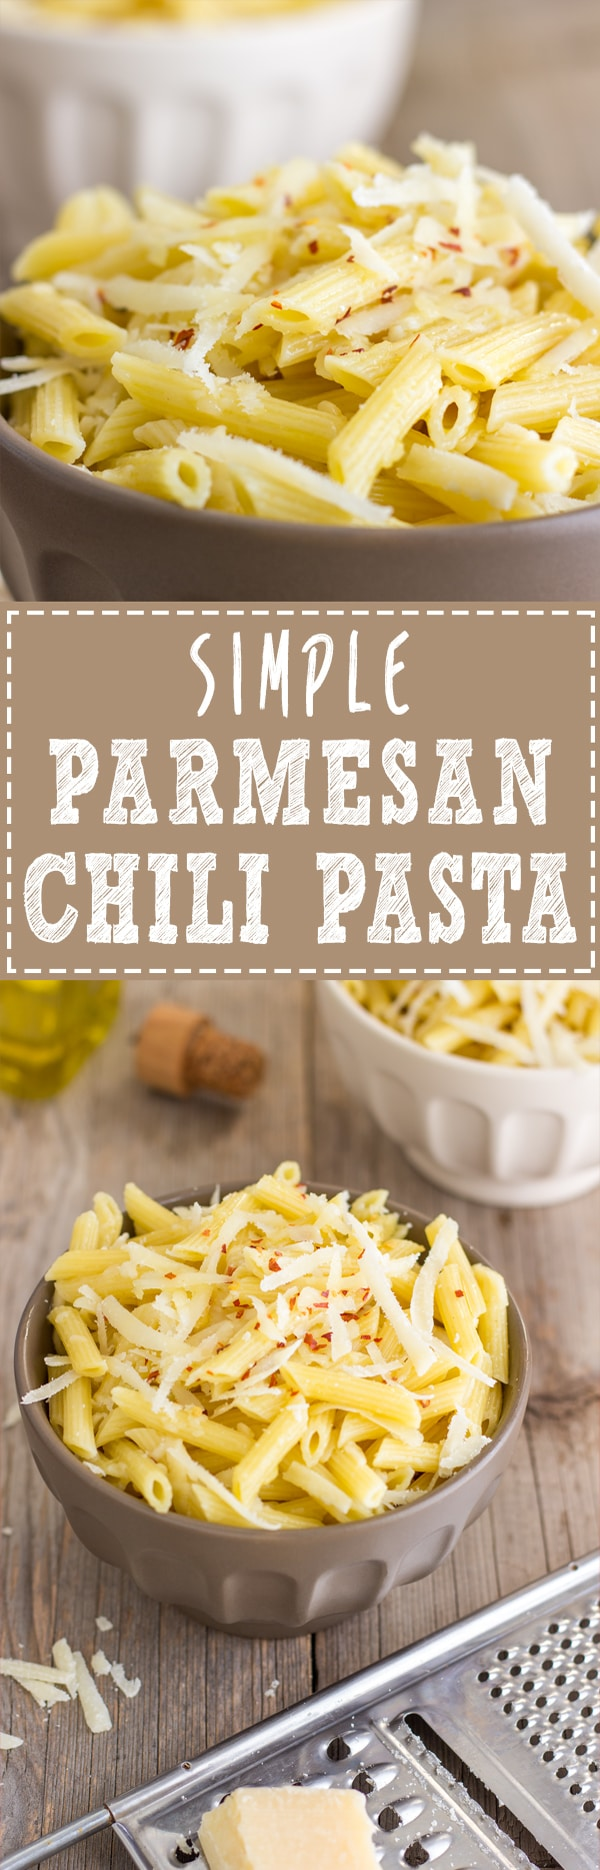 Simple Parmesan Chili Pasta - This is the easiest and fastest pasta recipe ever! All you have to do is cook the pasta, pour over some good quality extra virgin olive oil, add parmesan + chili flakes, mix well and you are ready to serve! | happyfoodstube.com